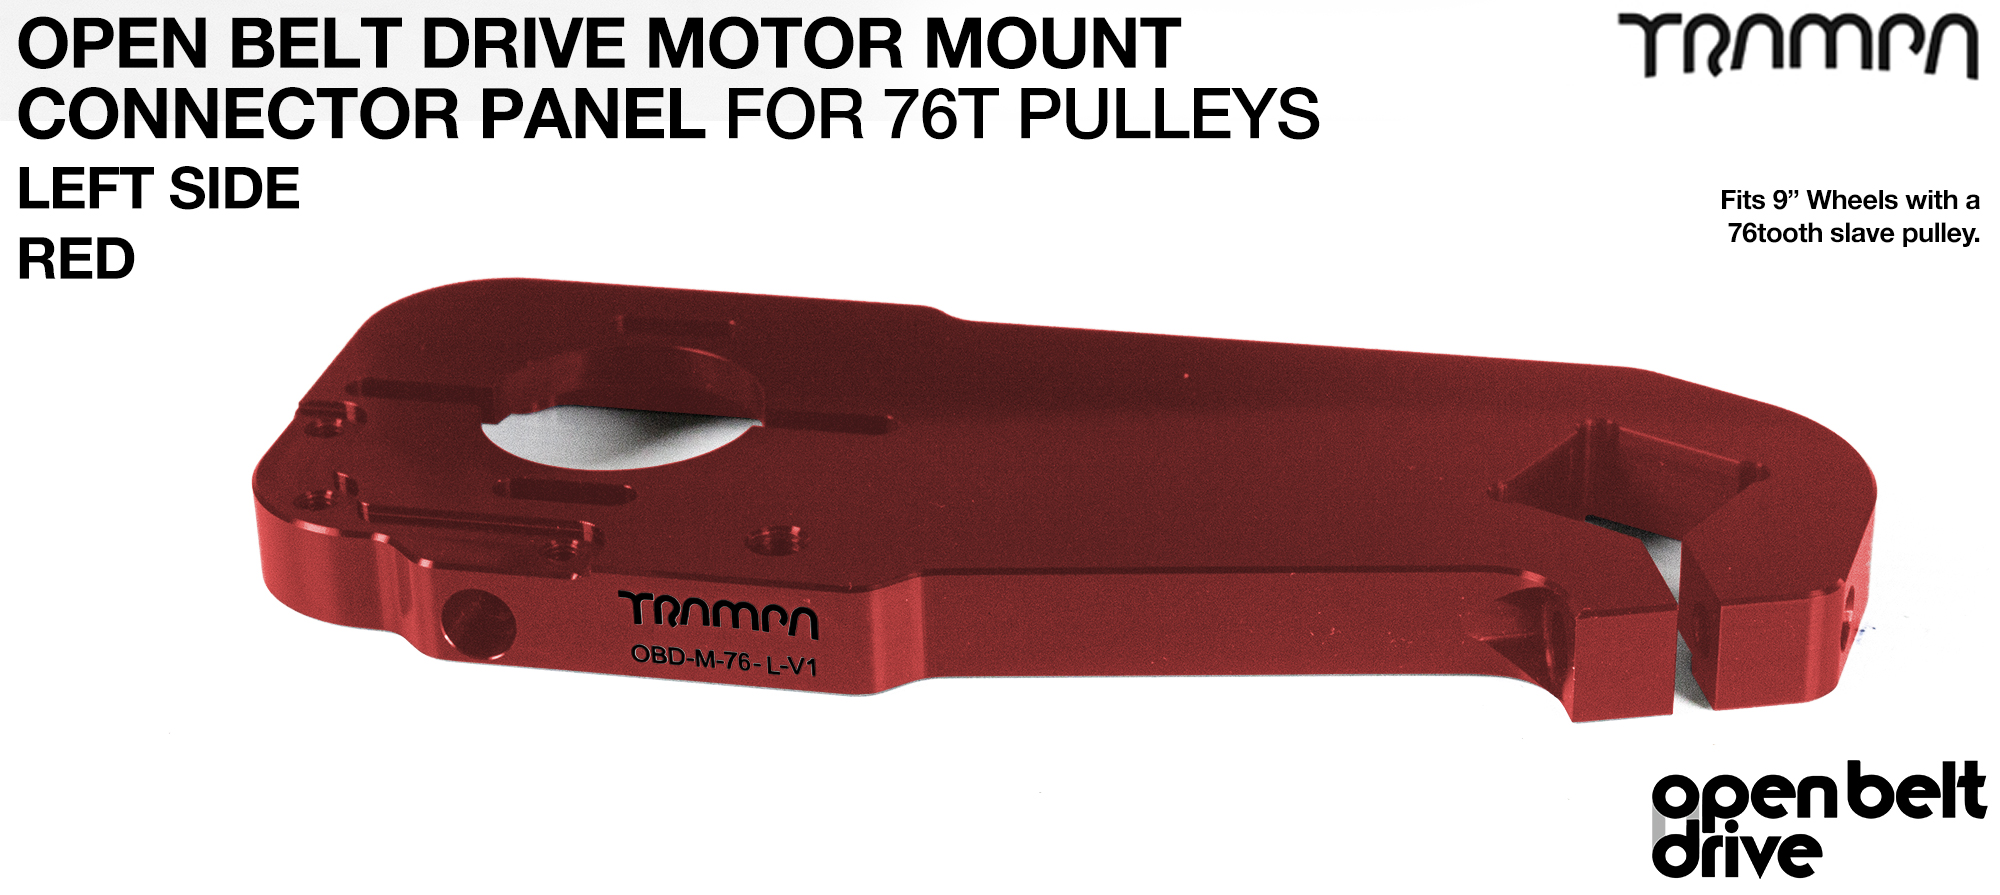 RED 76T TWIN OBD Motor Mount Connector Panels